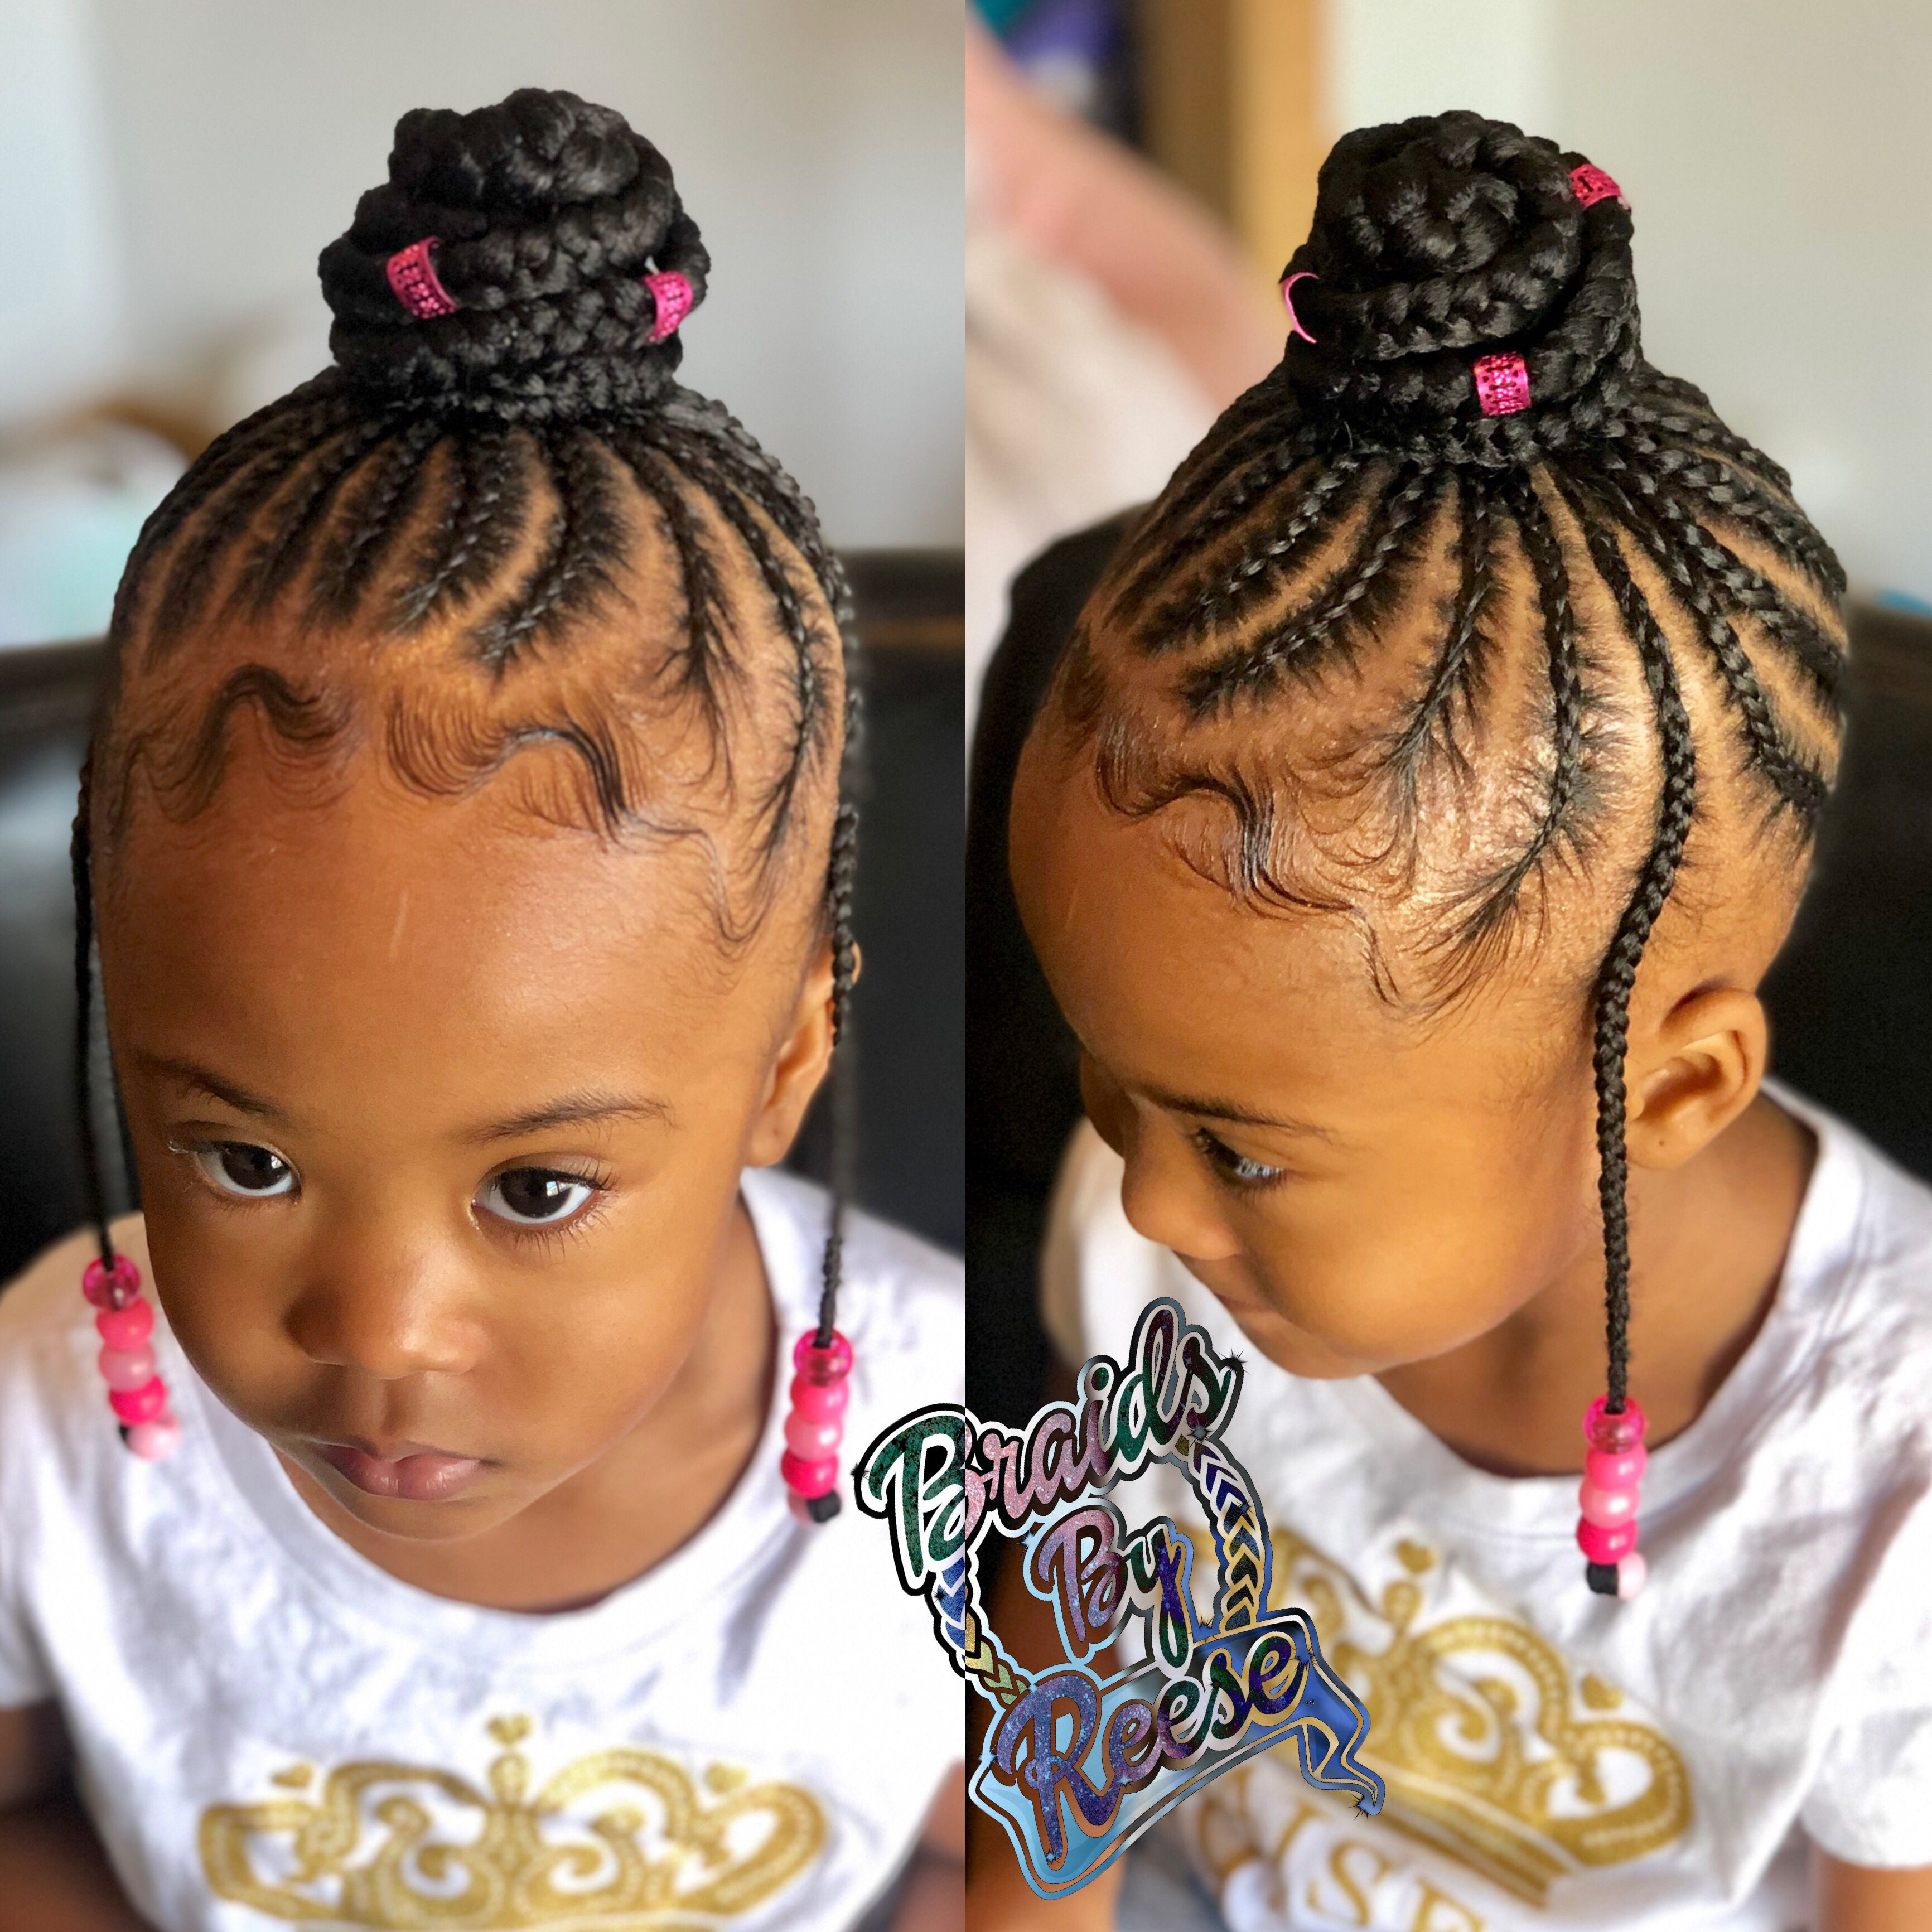 Follow Black Empire For More Pins Kids Hairstyles Kids